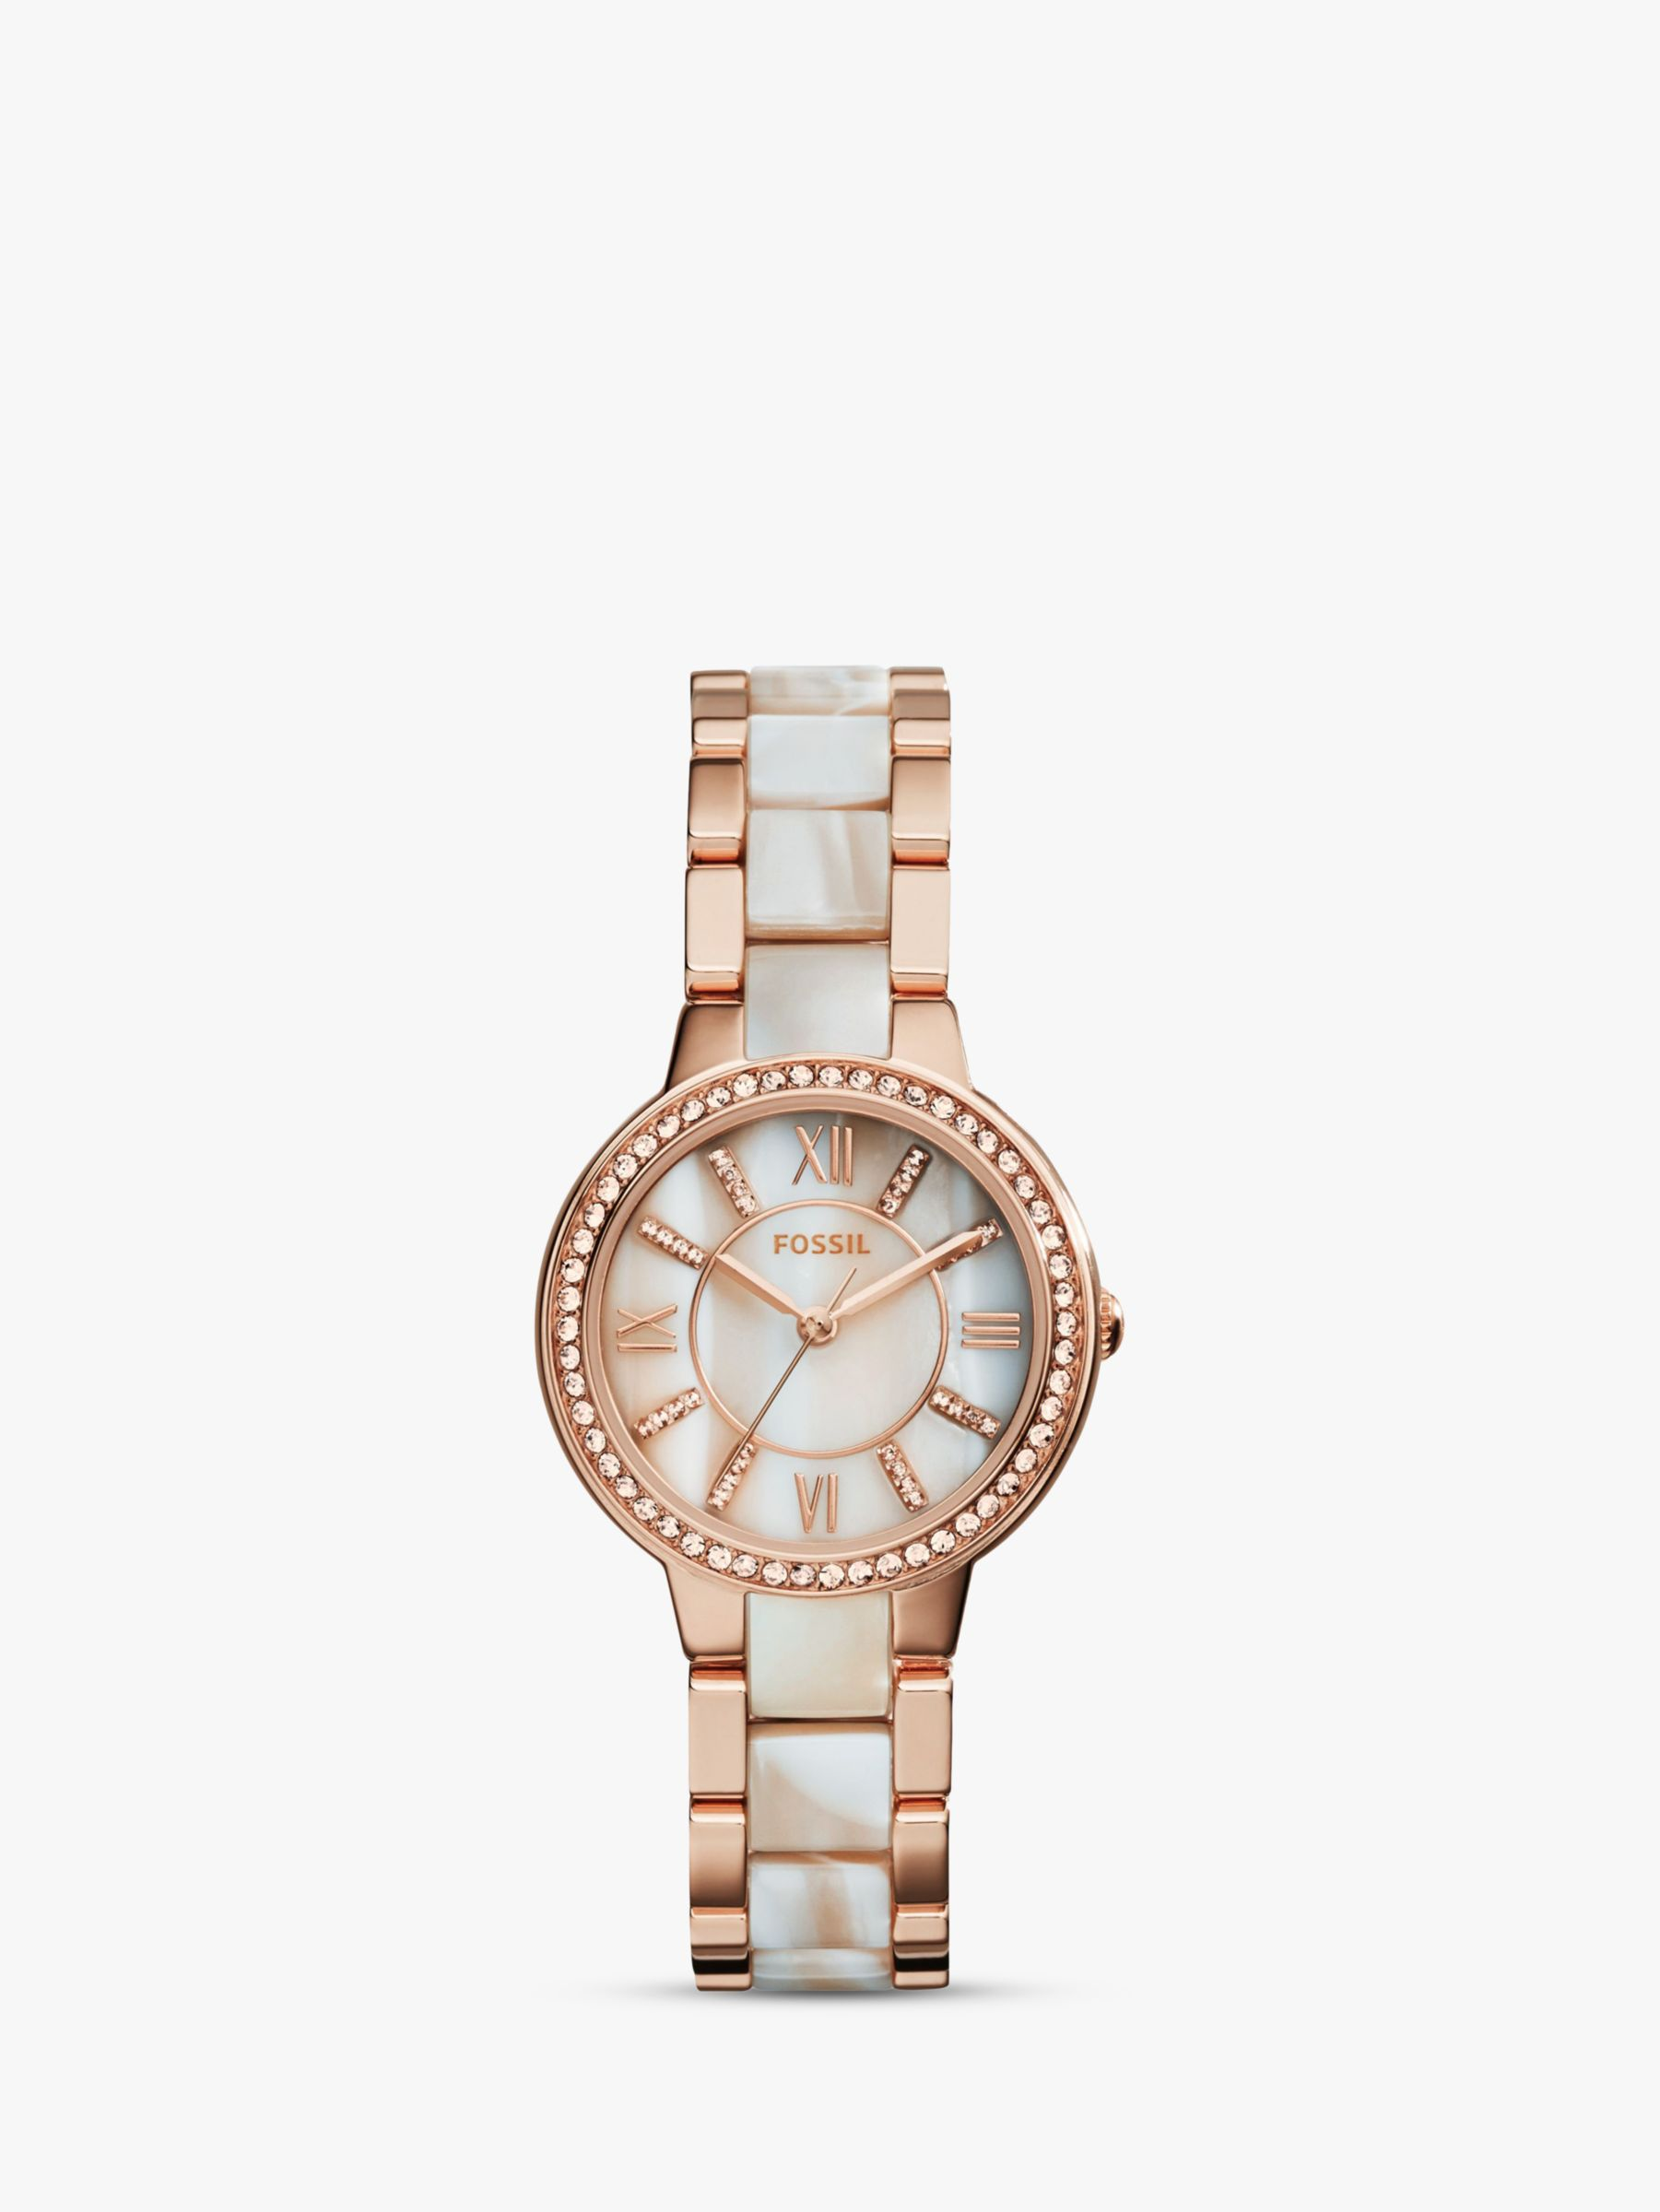 Fossil Fossil ES3716 Women's Virginia Bracelet Strap Watch, Rose Gold/Mother of Pearl